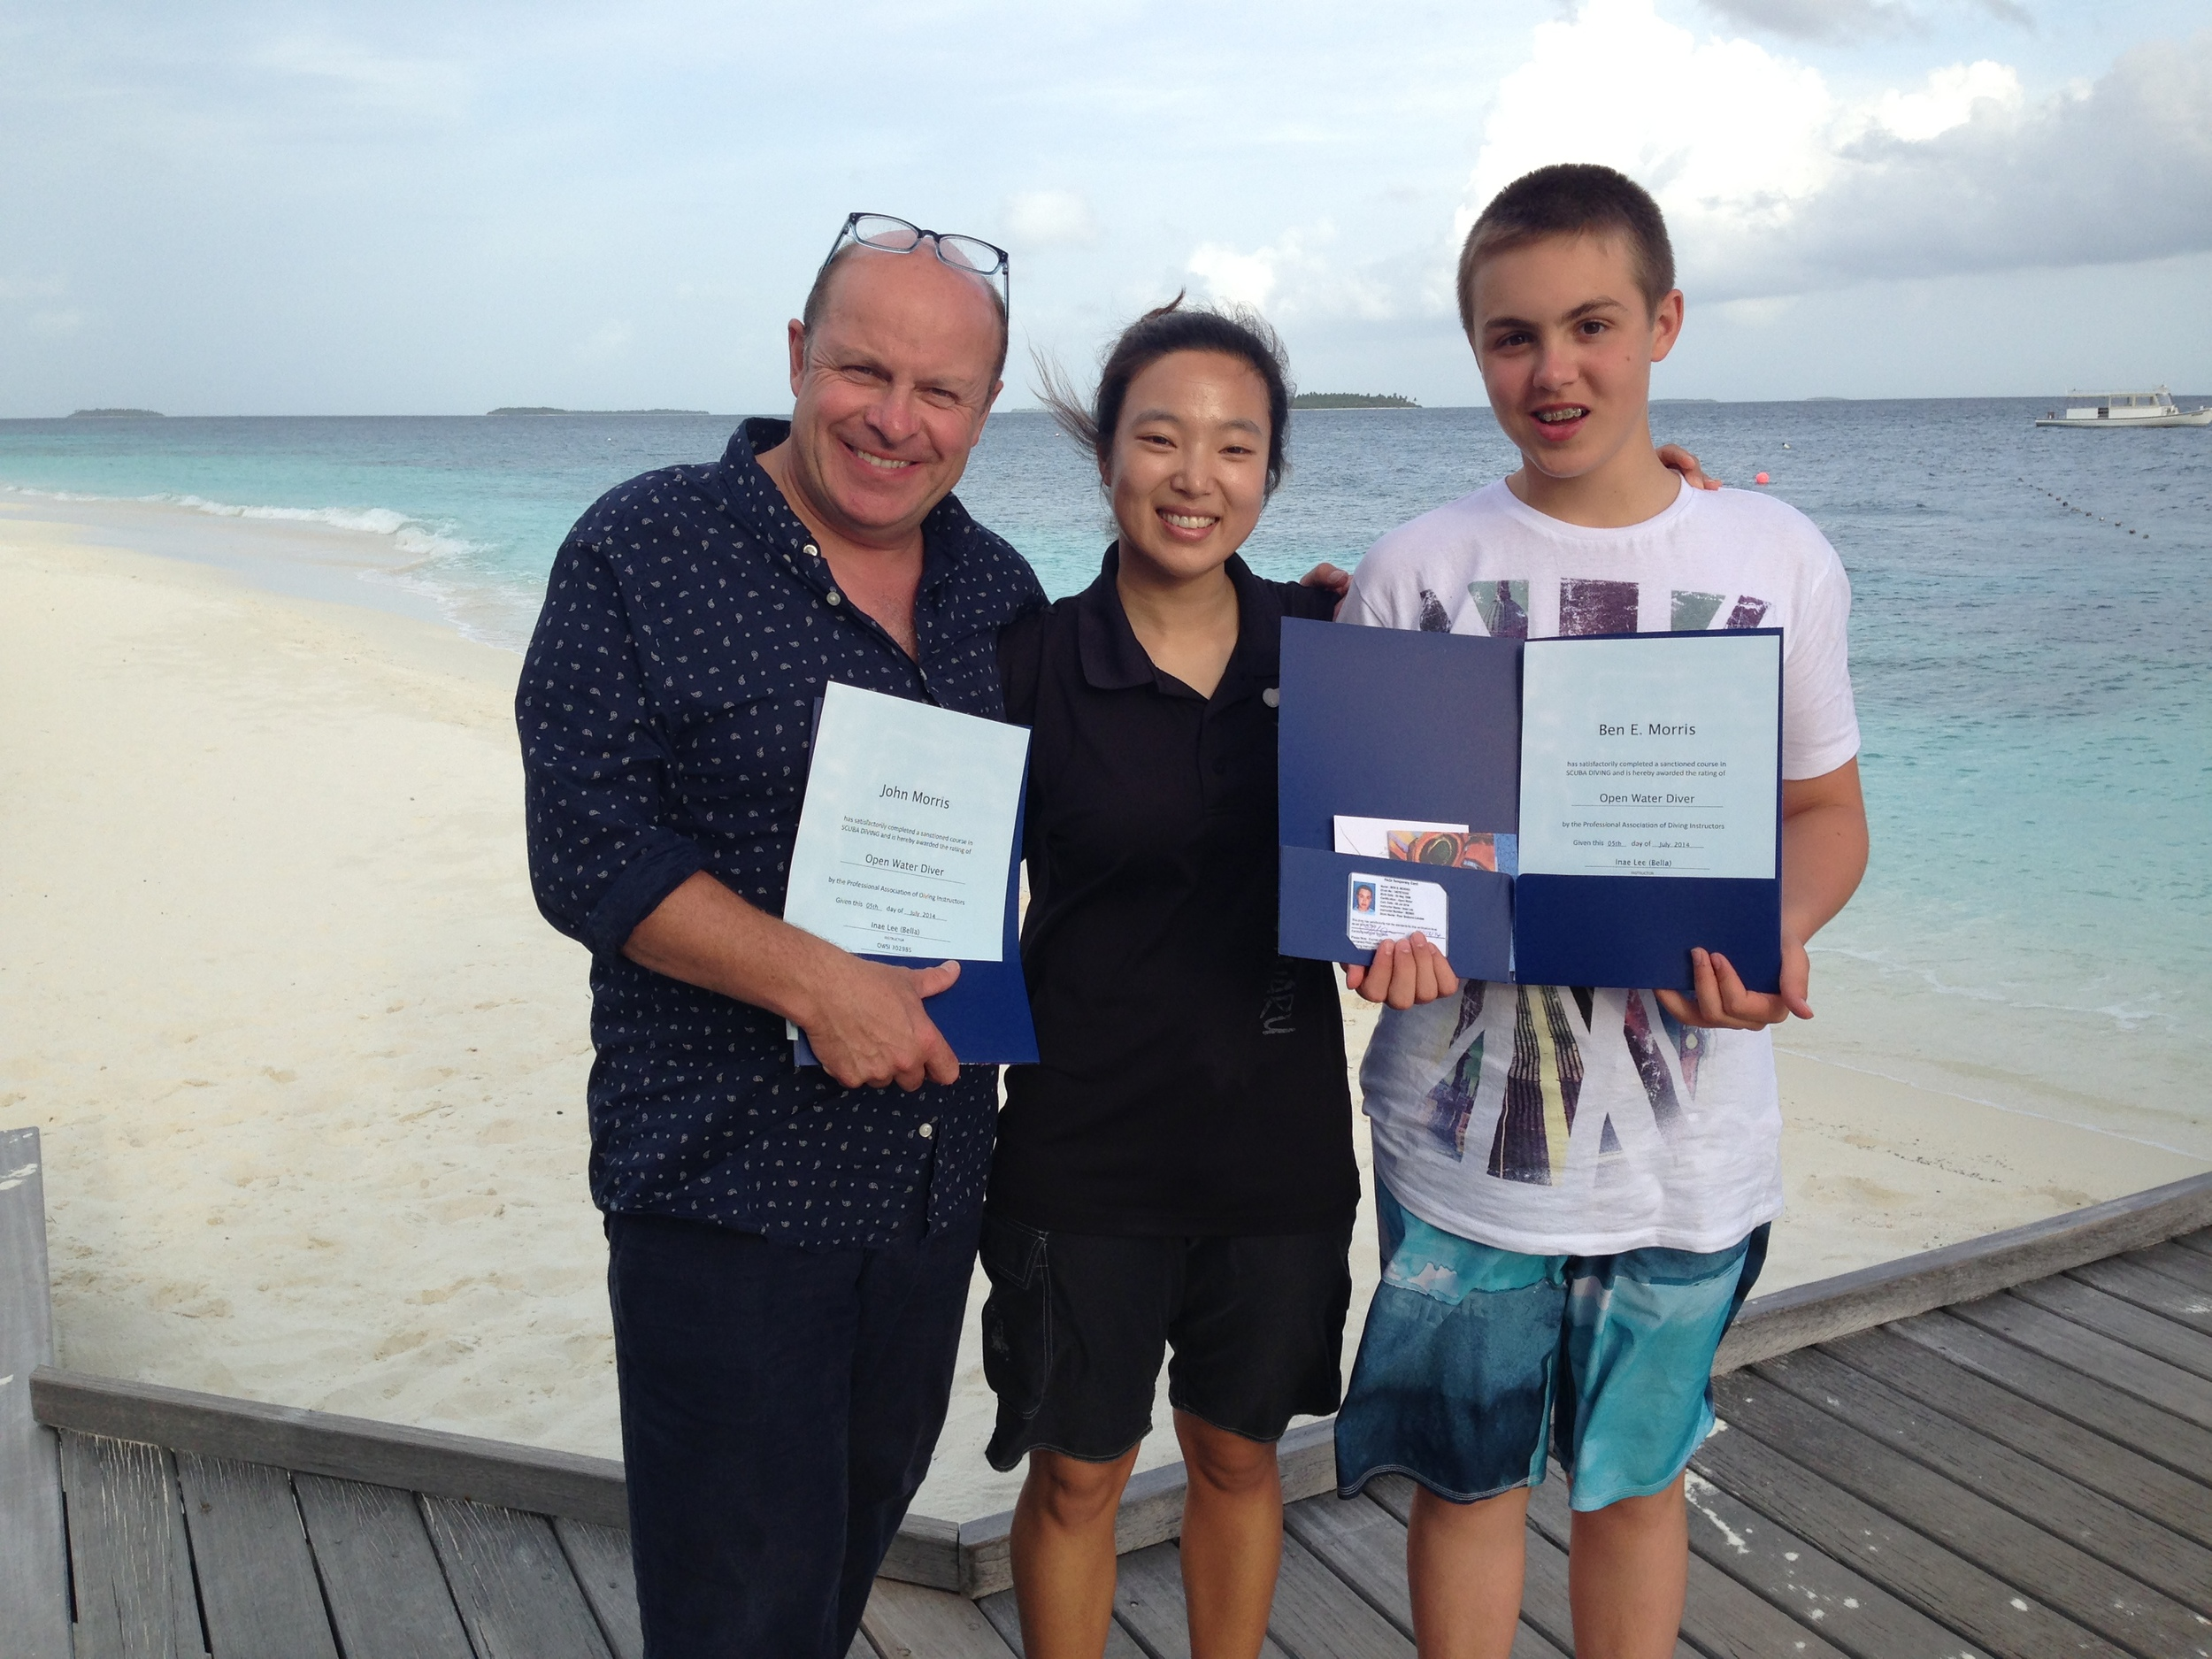 The wonderful scuba instructor Bella, who took Johnny and Ben through their PADI course and let Ben observe her teaching for his work experience.